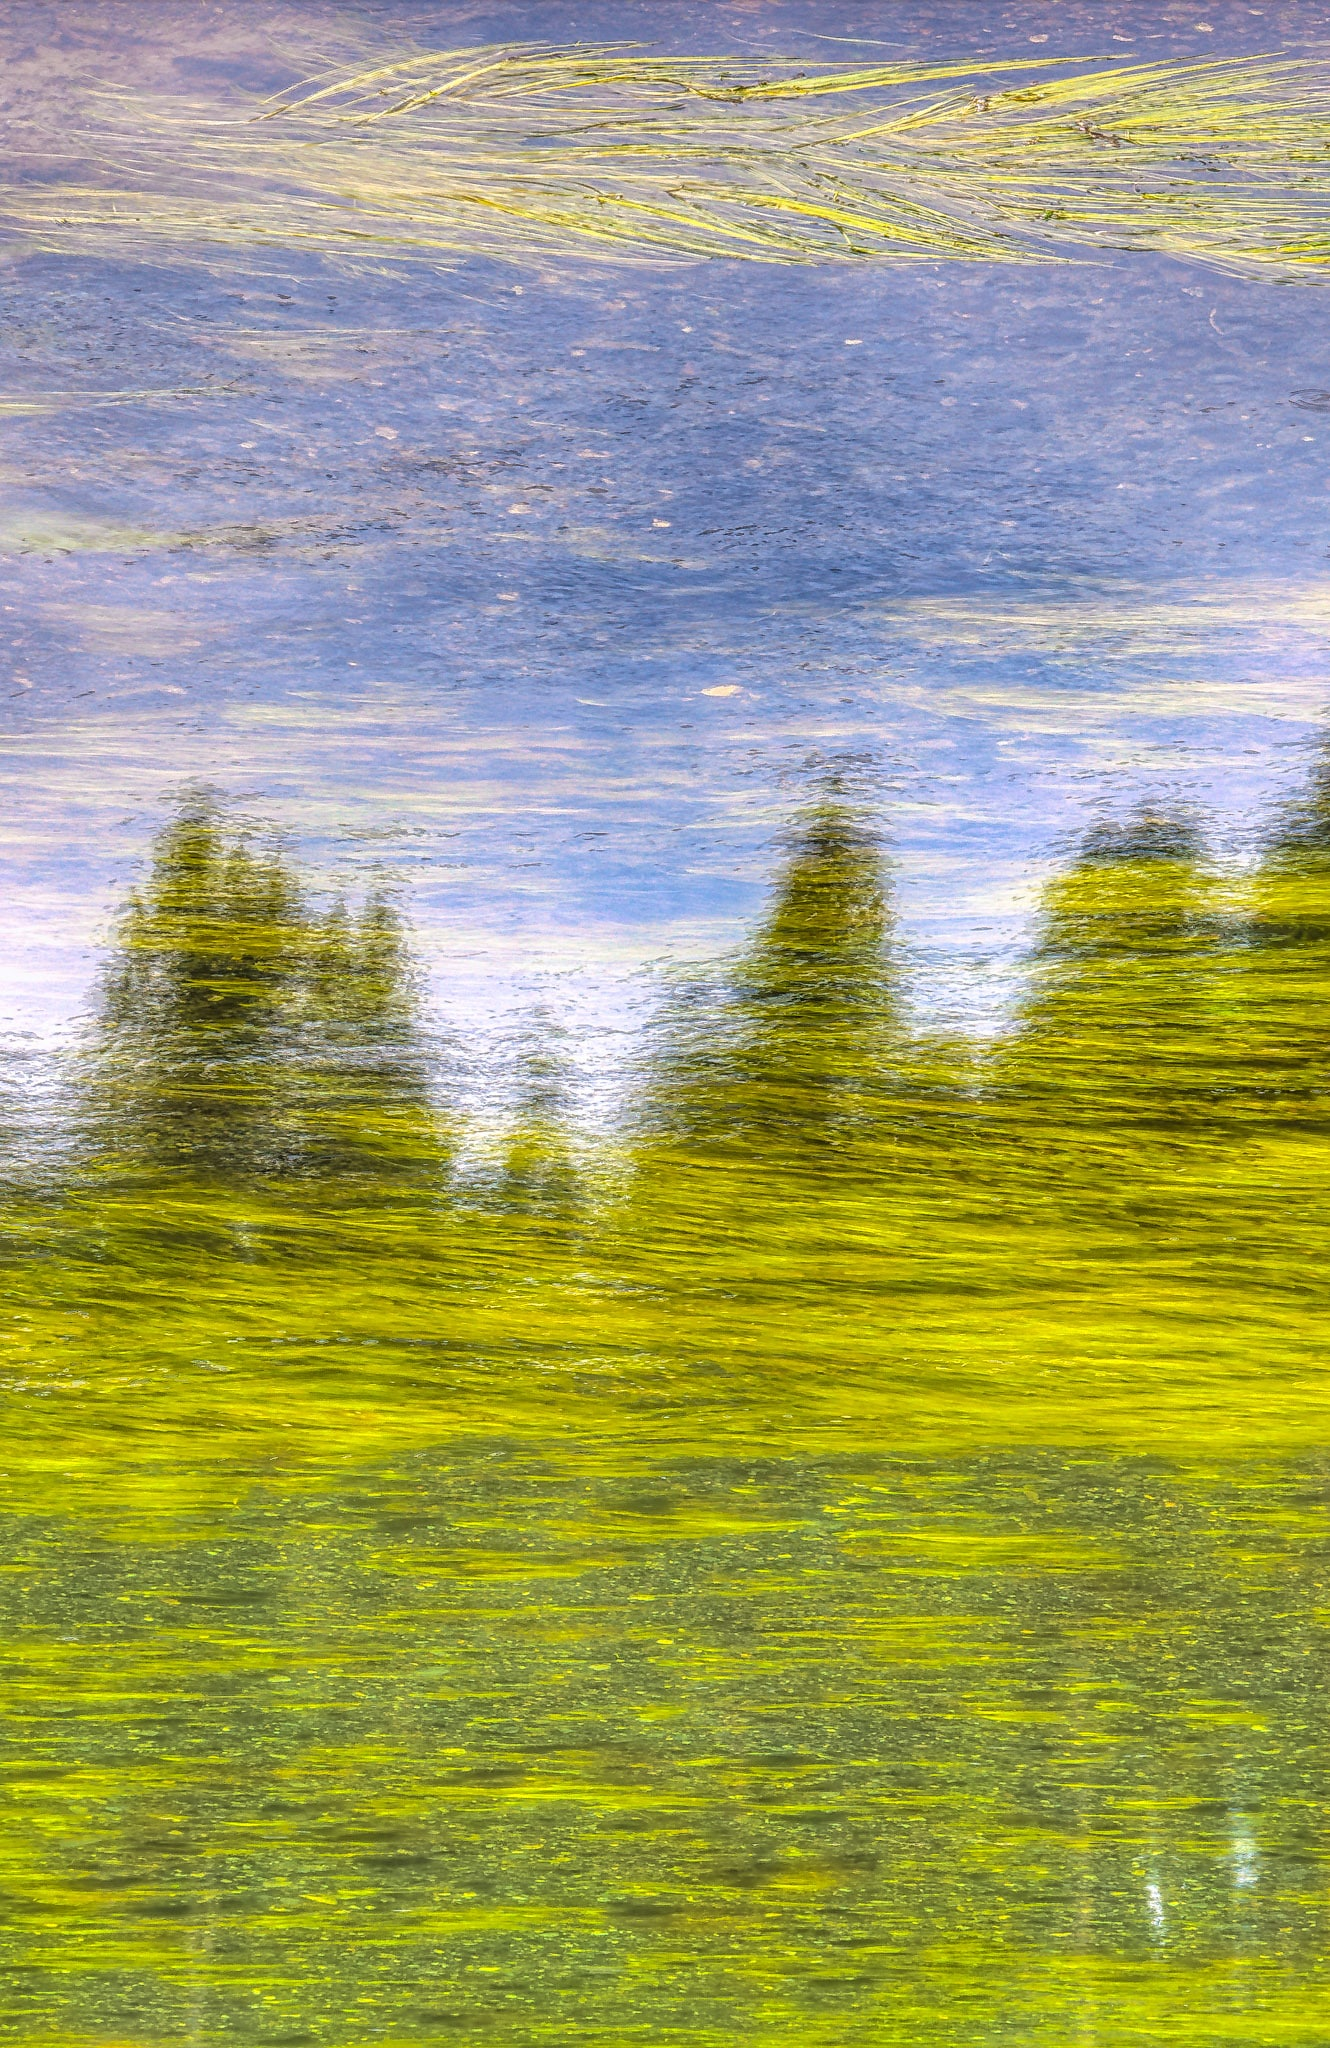 Lodgepole pine reflected in a pond in Yellowstone National Park, Wyoming.